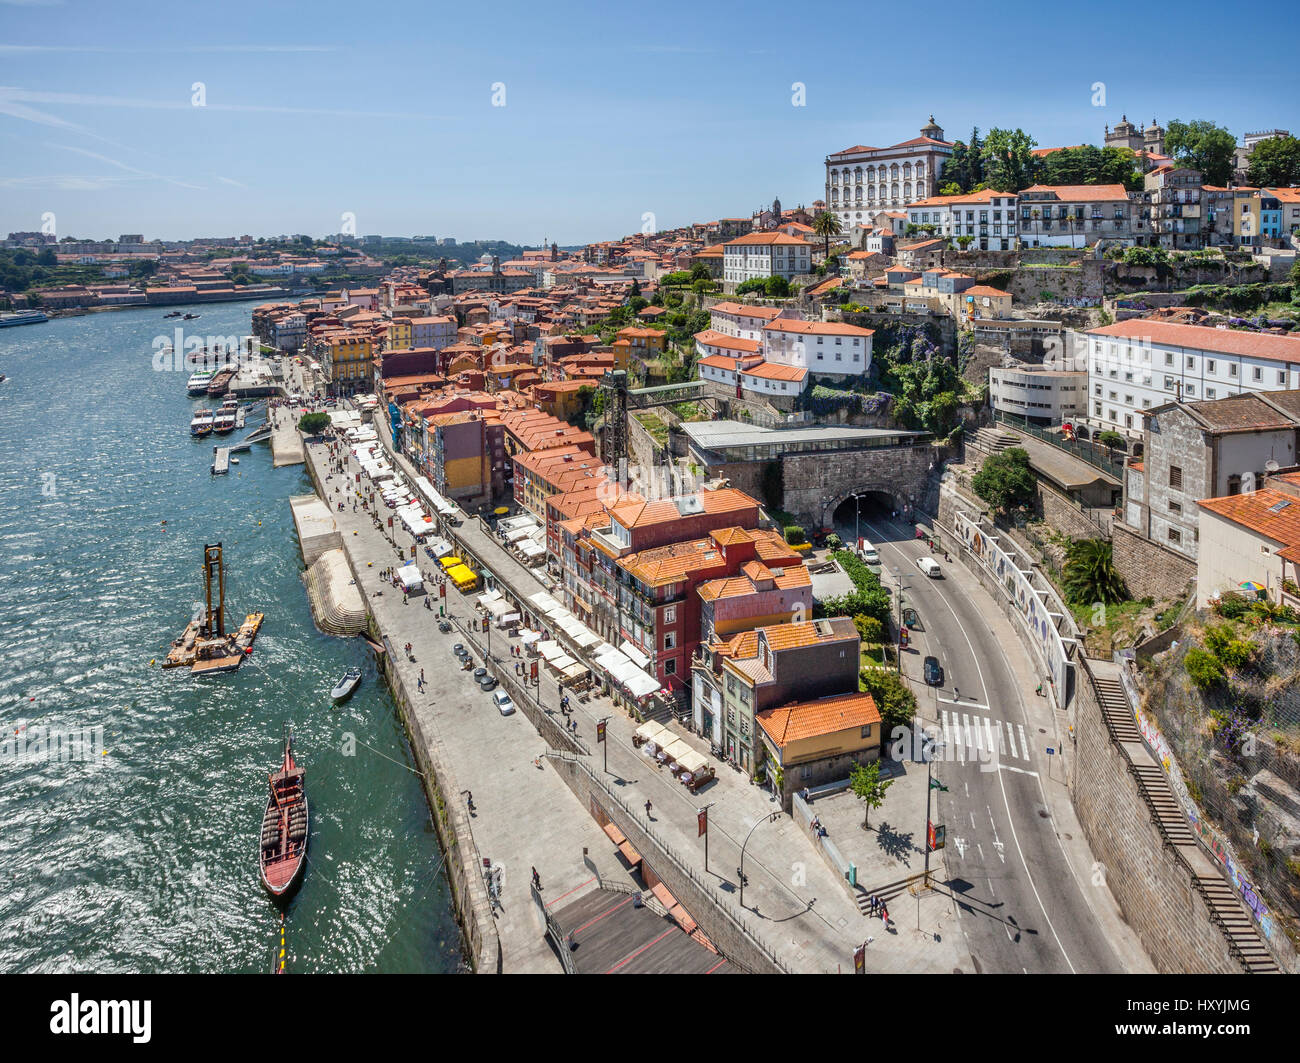 Portugal, Region Norte, Porto, view of Cais da Ribeira and Ribeira tunnel at the historical part of Porto on the - Stock Image